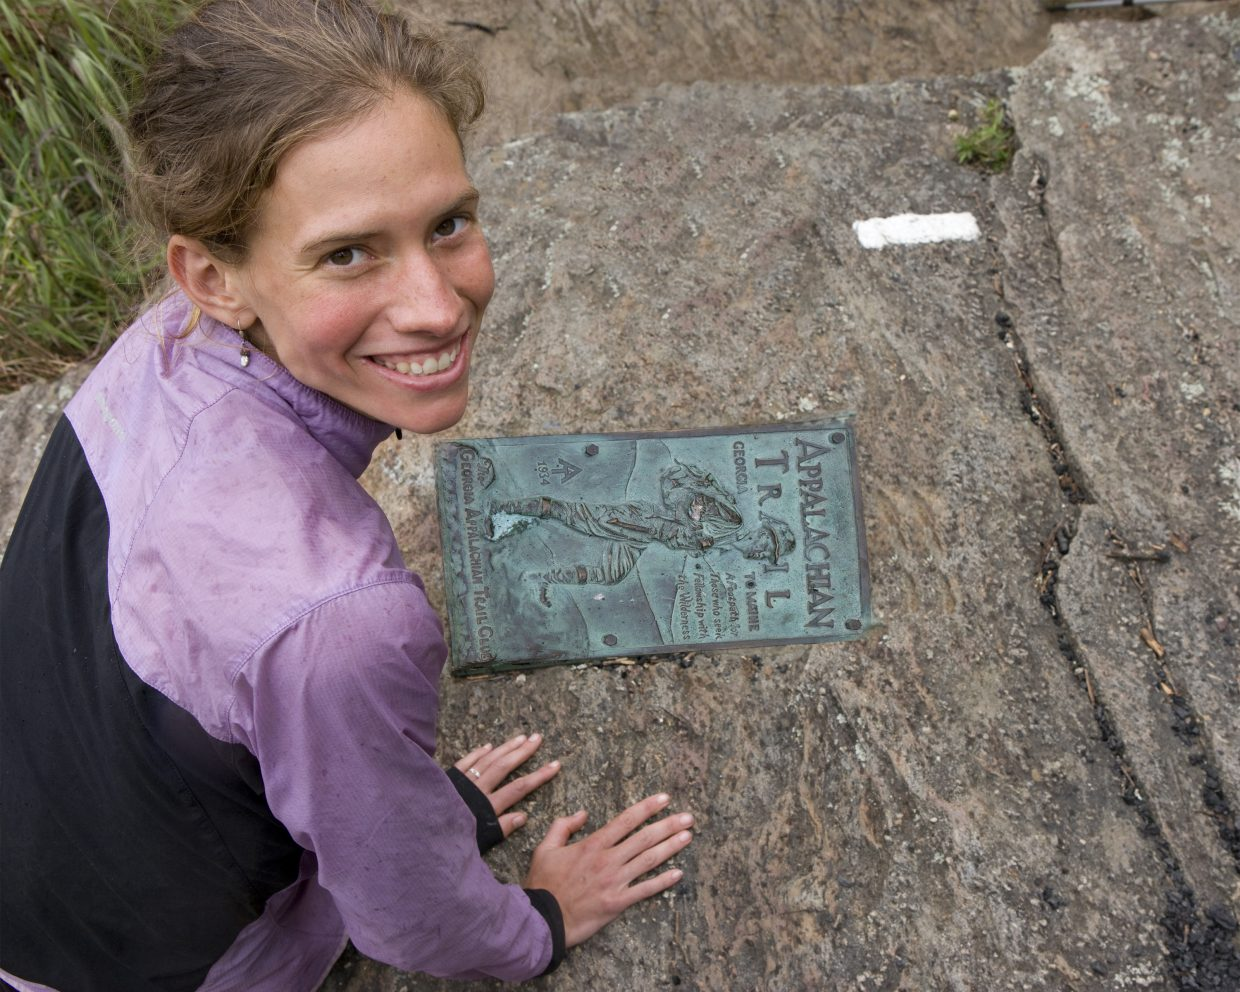 In 2011, Jennifer Pharr Davis recorded the fastest time to complete a supported thru-hike of the Appalachian Trail.